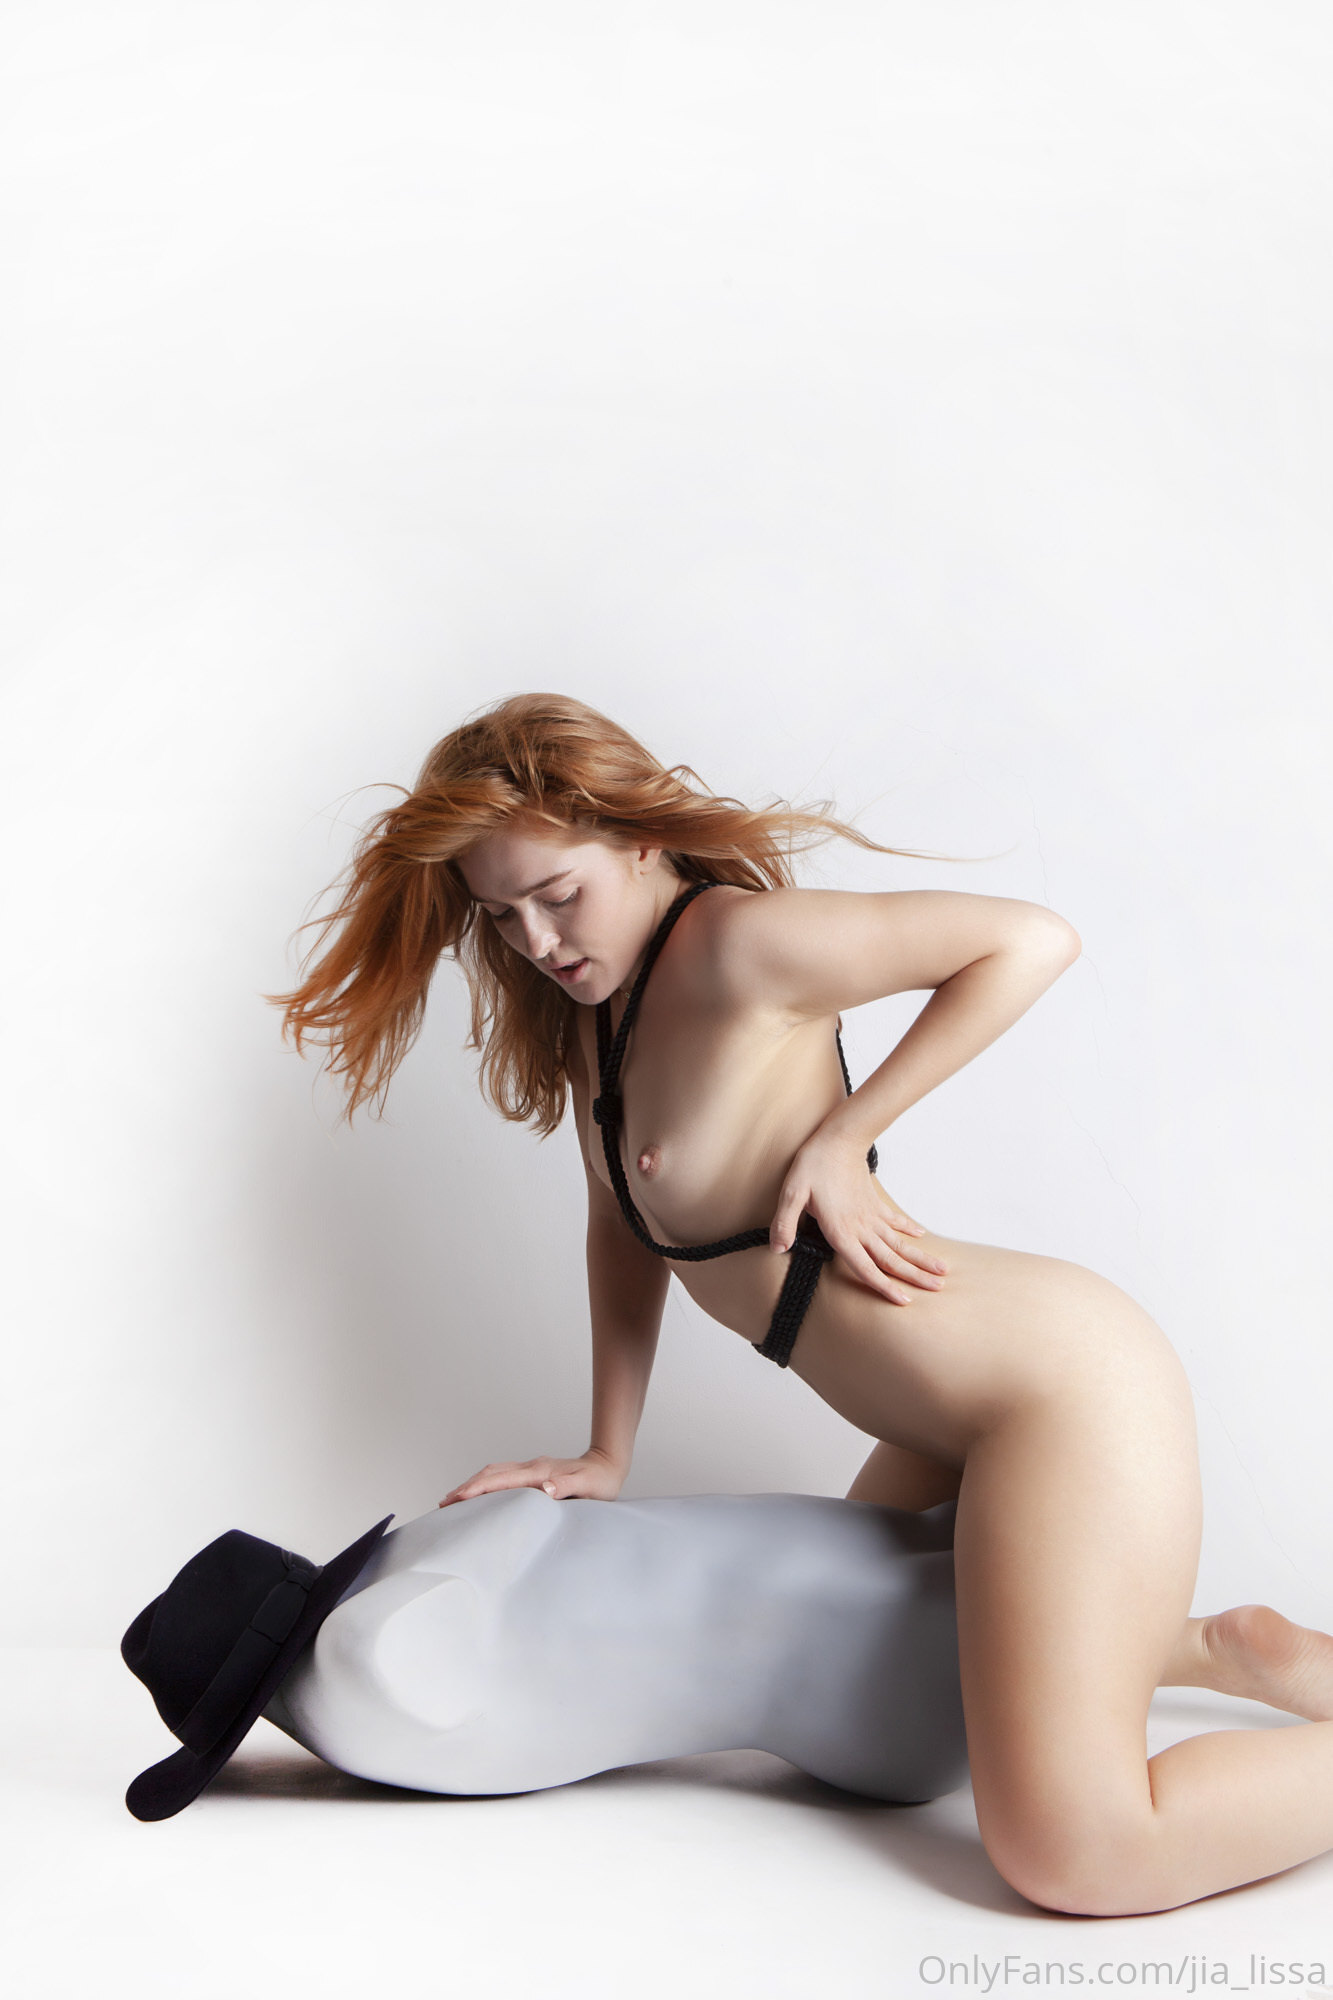 Jia Lissa Porn OnlyFans Leaked Nudes 57